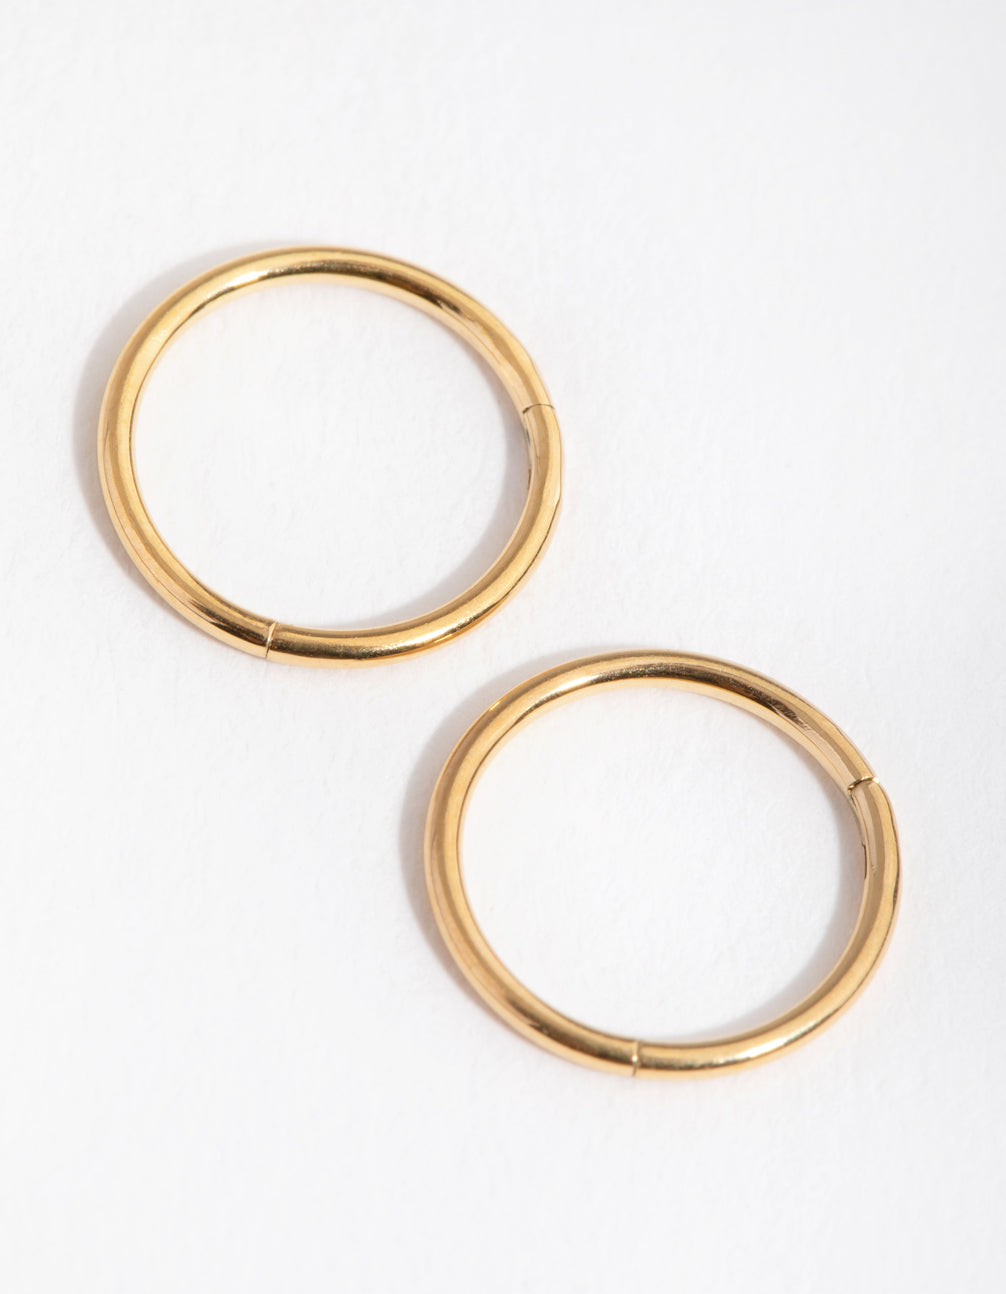 24 Carat Gold Plated Surgical Steel 8mm Sleeper Earrings